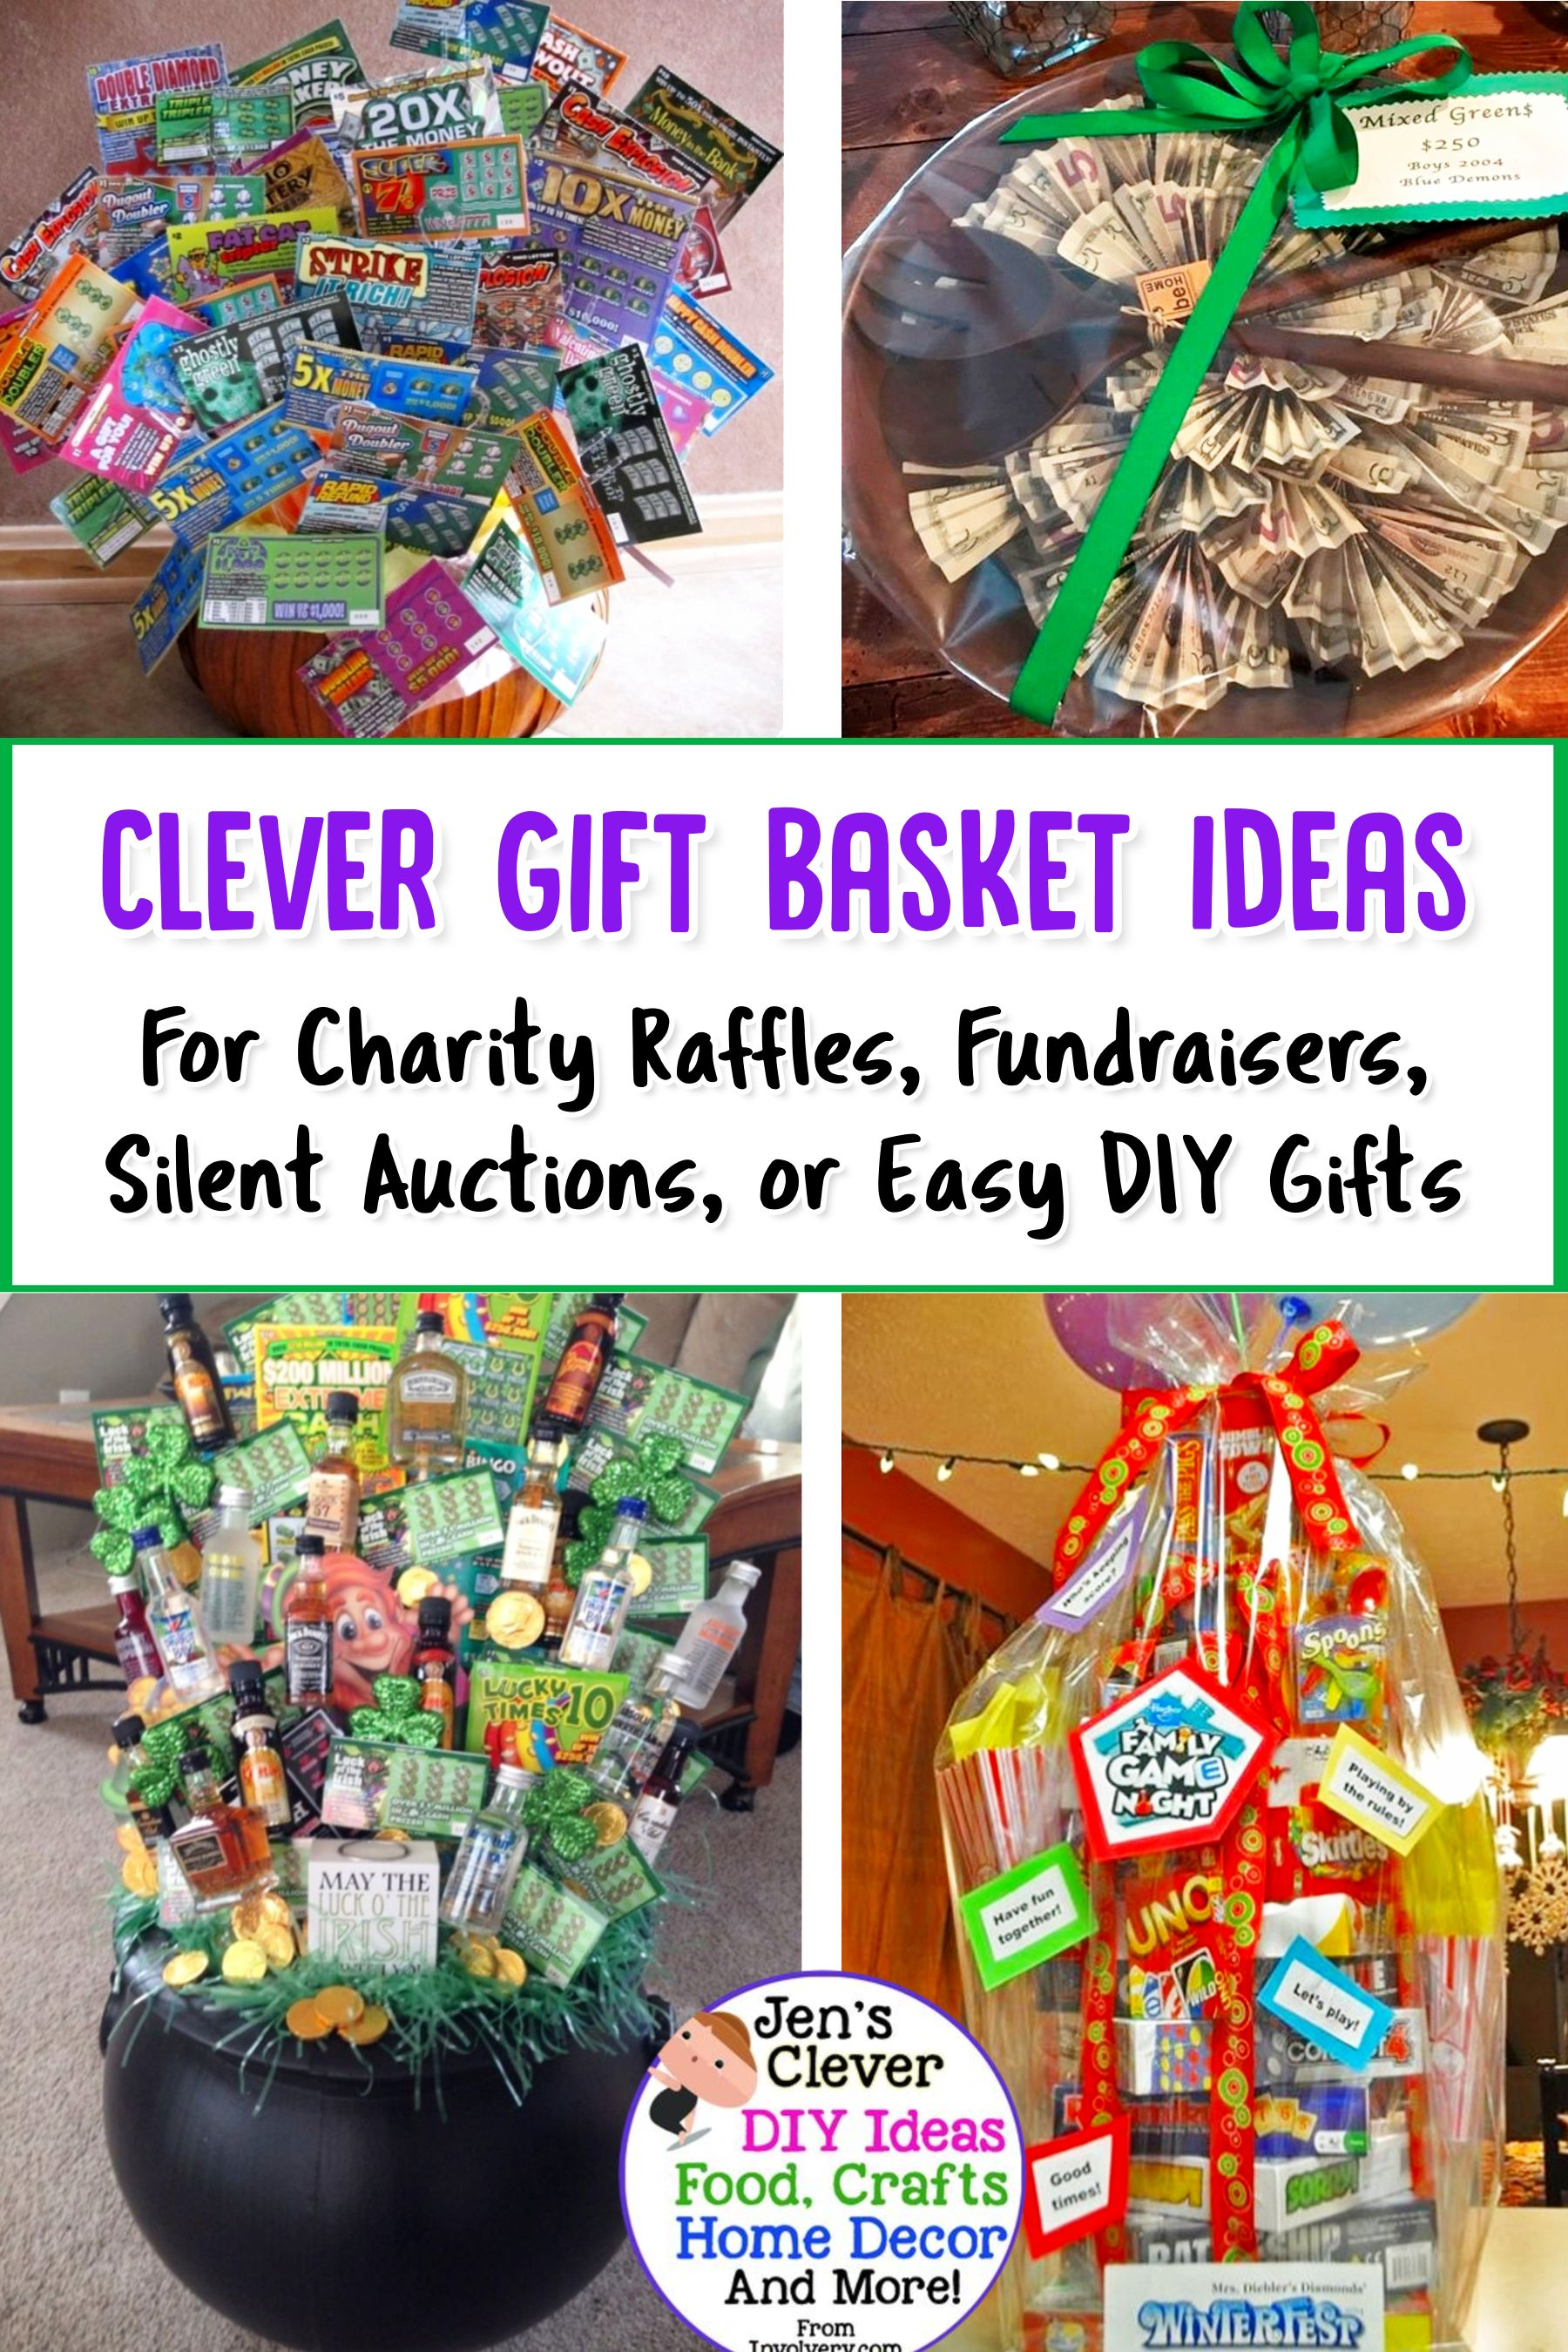 Creative Raffle Gift Basket Ideas For Charity School Fundraising Or Silent Auction November 2020 In 2020 Homemade Gift Baskets Gift Baskets For Women Kids Gift Baskets